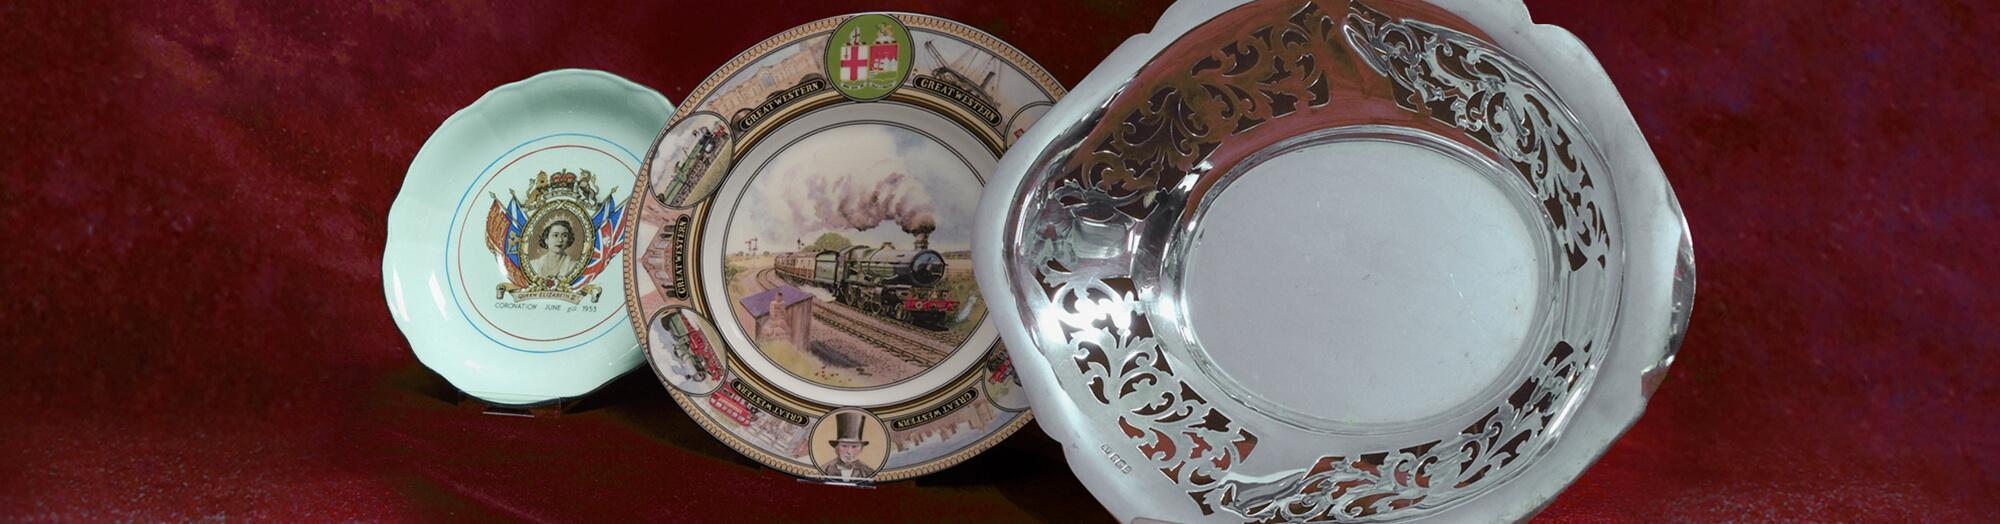 Benham Collectible Plates